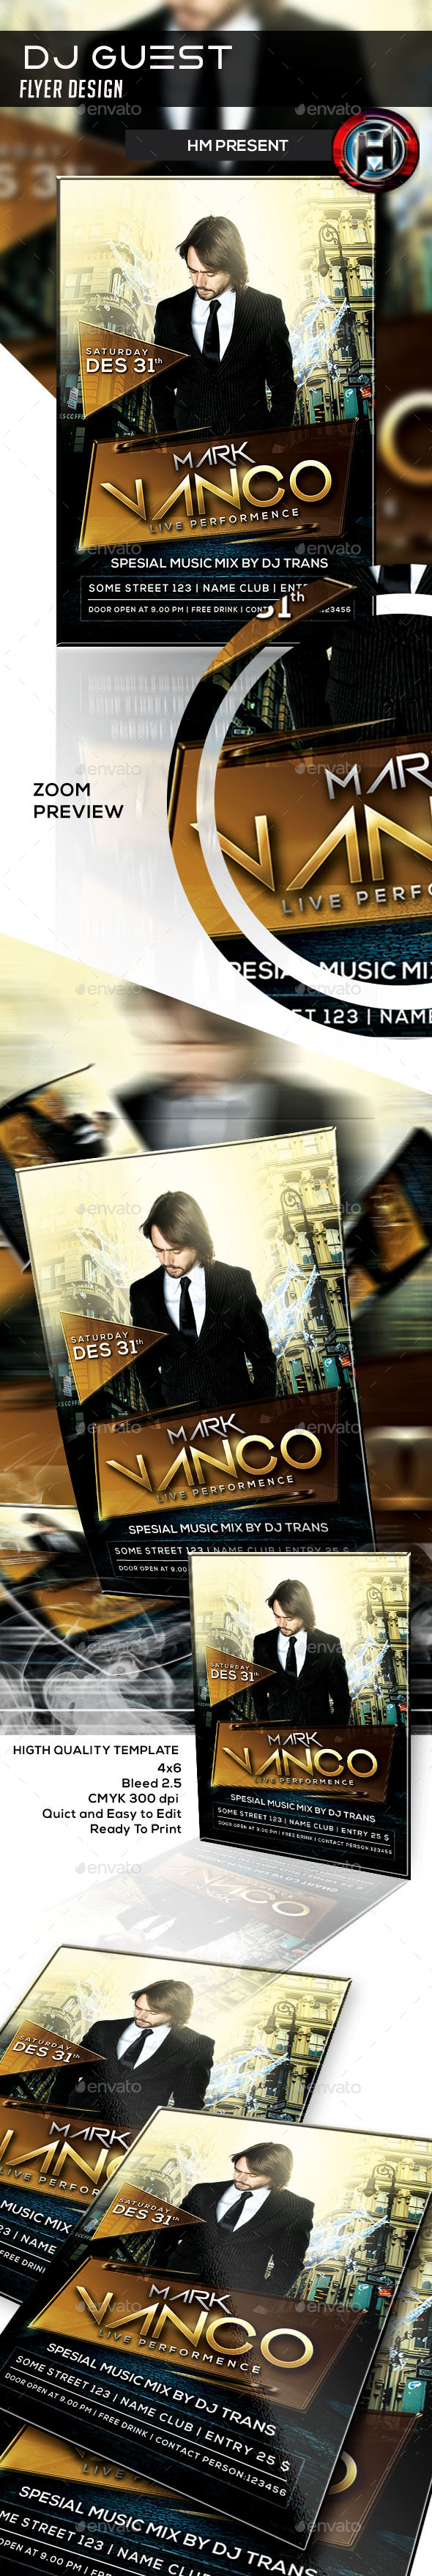 DJ Guest Flyer Design  - Events Flyers